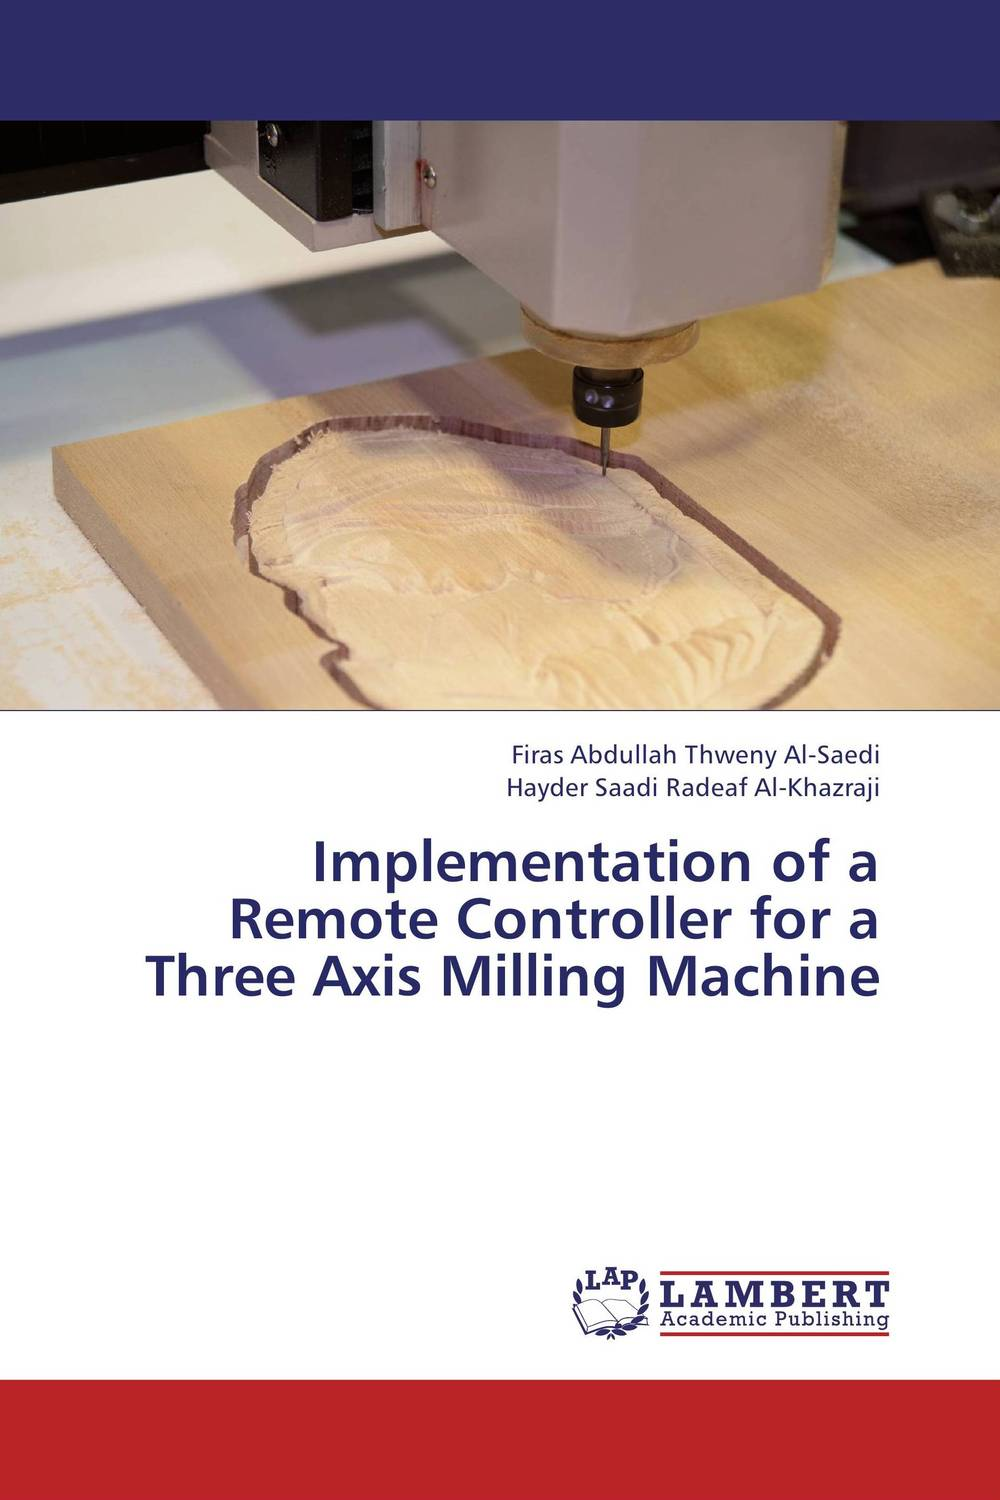 Implementation of a Remote Controller for a Three Axis Milling Machine implementation of a remote controller for a three axis milling machine